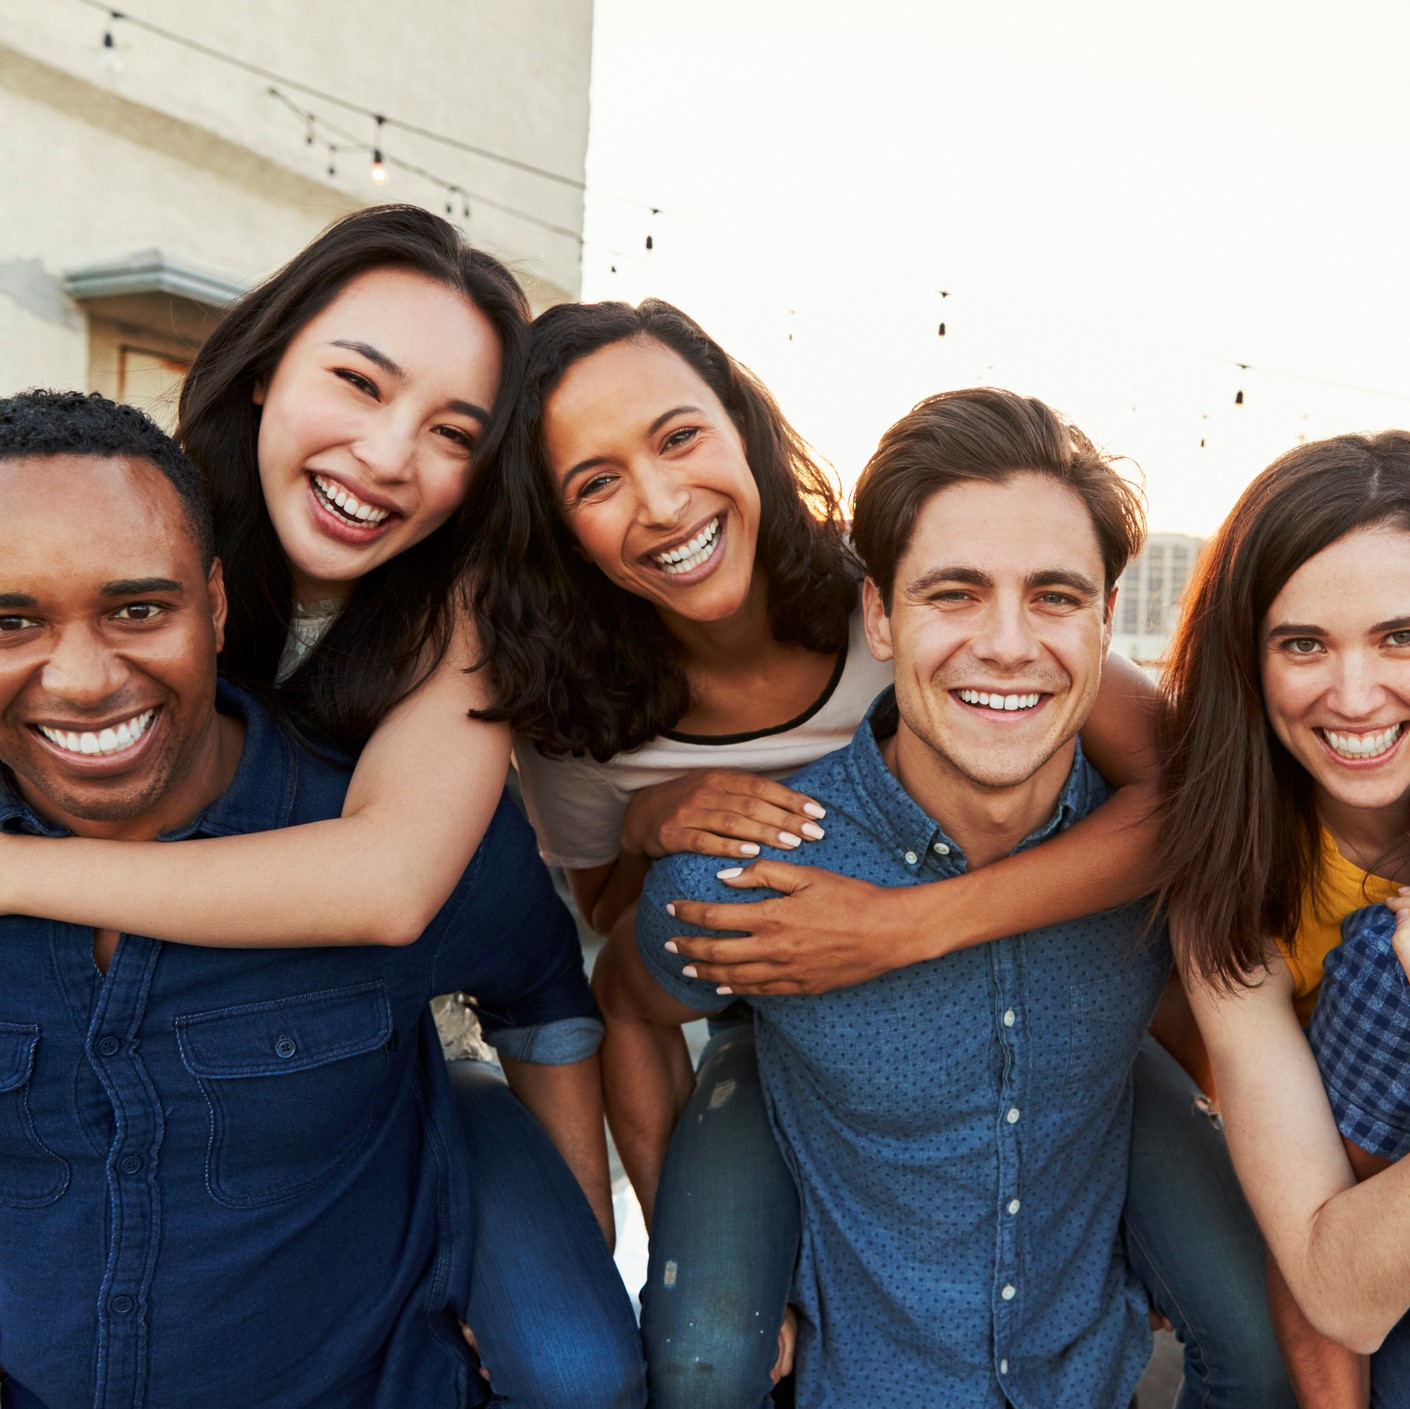 Group of adults hugging and smiling